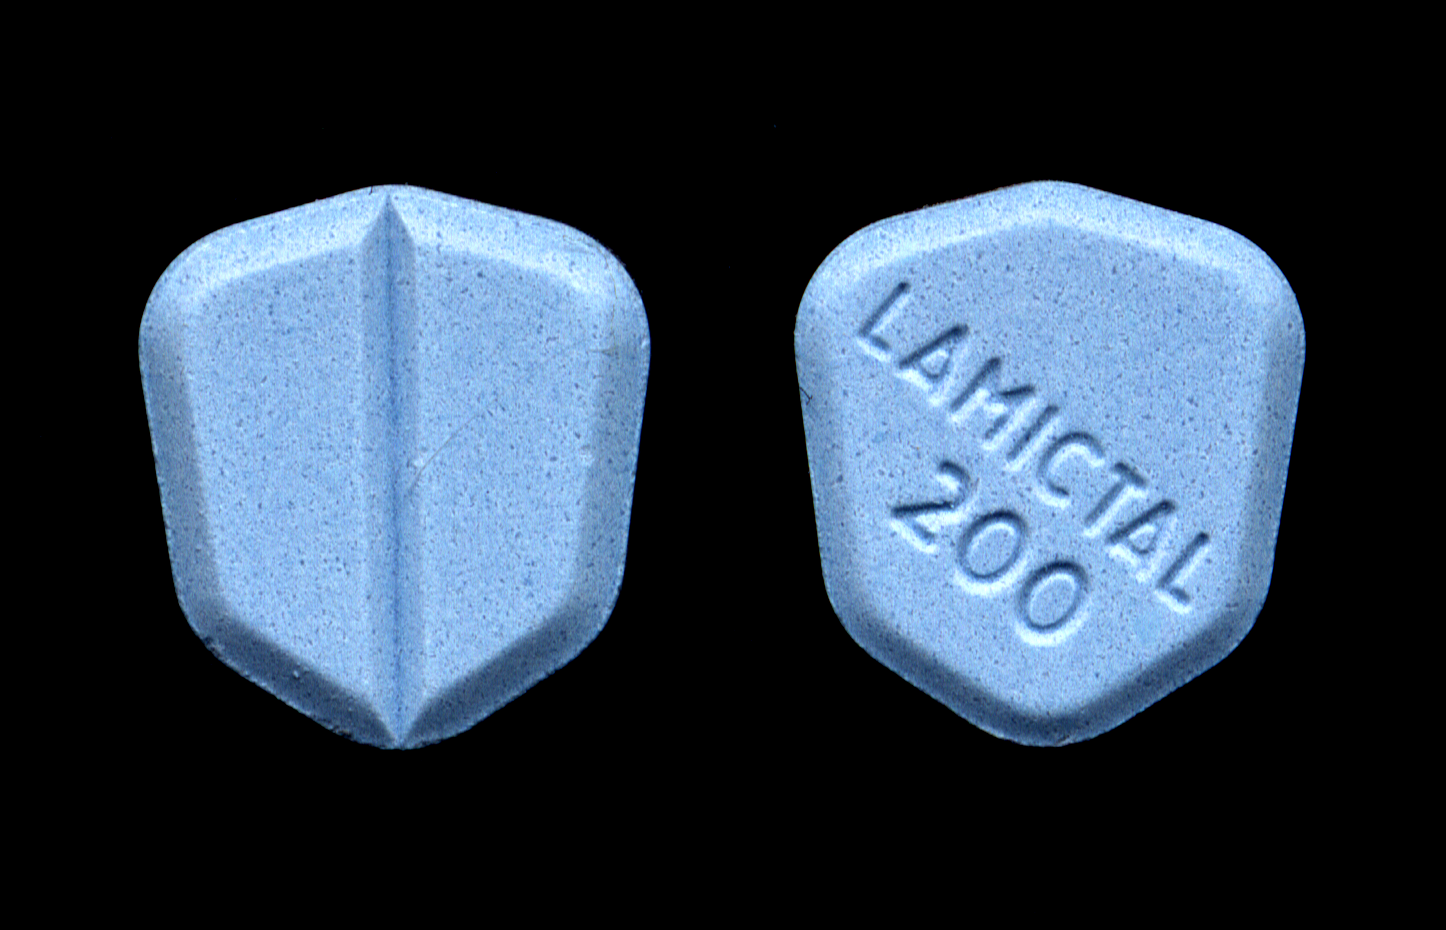 Lamotrigine 200 Mg Related Keywords & Suggestions - Lamotrigine 200 Mg ...